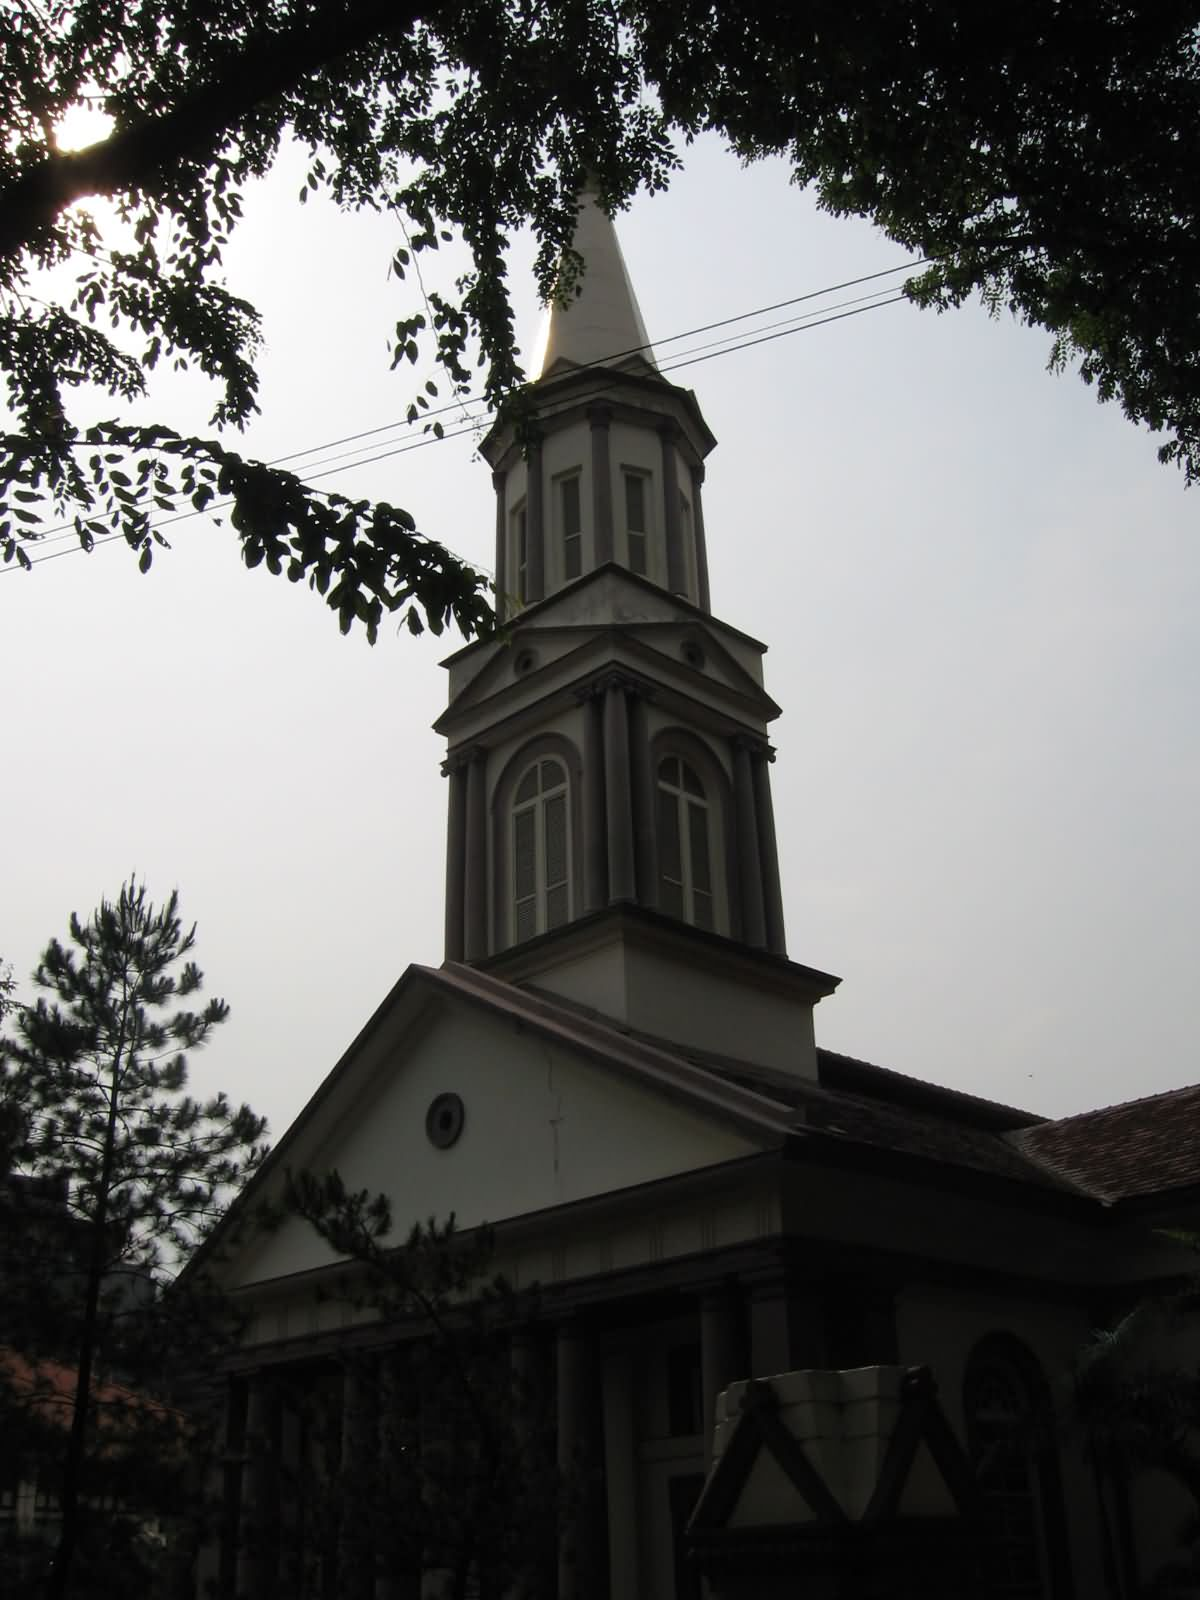 View Of The Steeple Of The Cathedral, Singapore